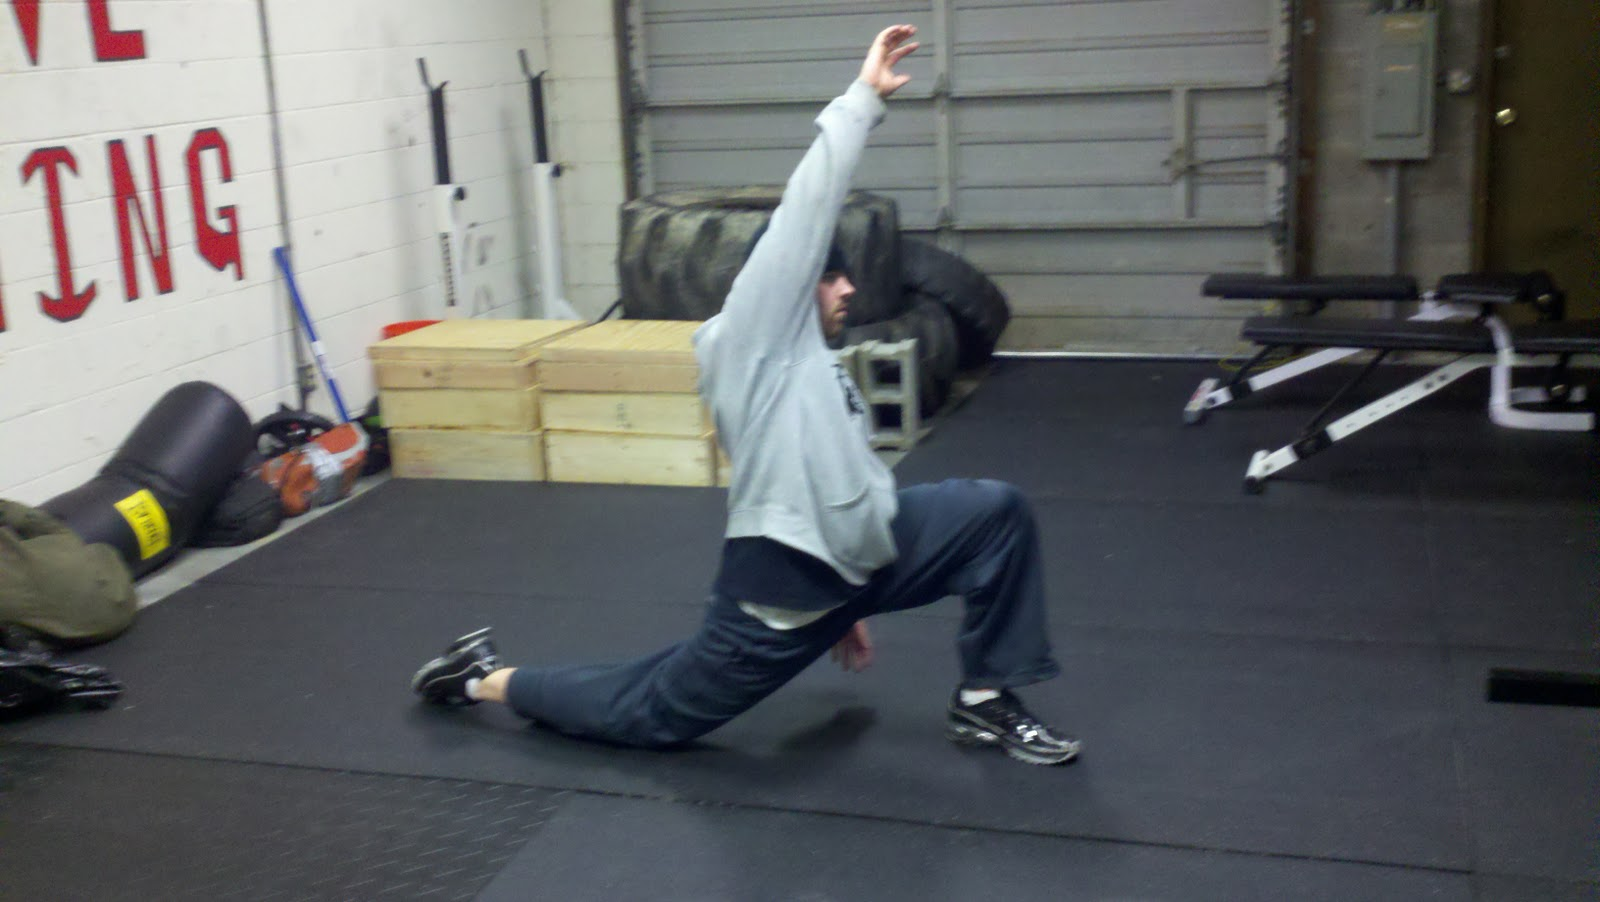 satisfactory exercise to construct hip flexors